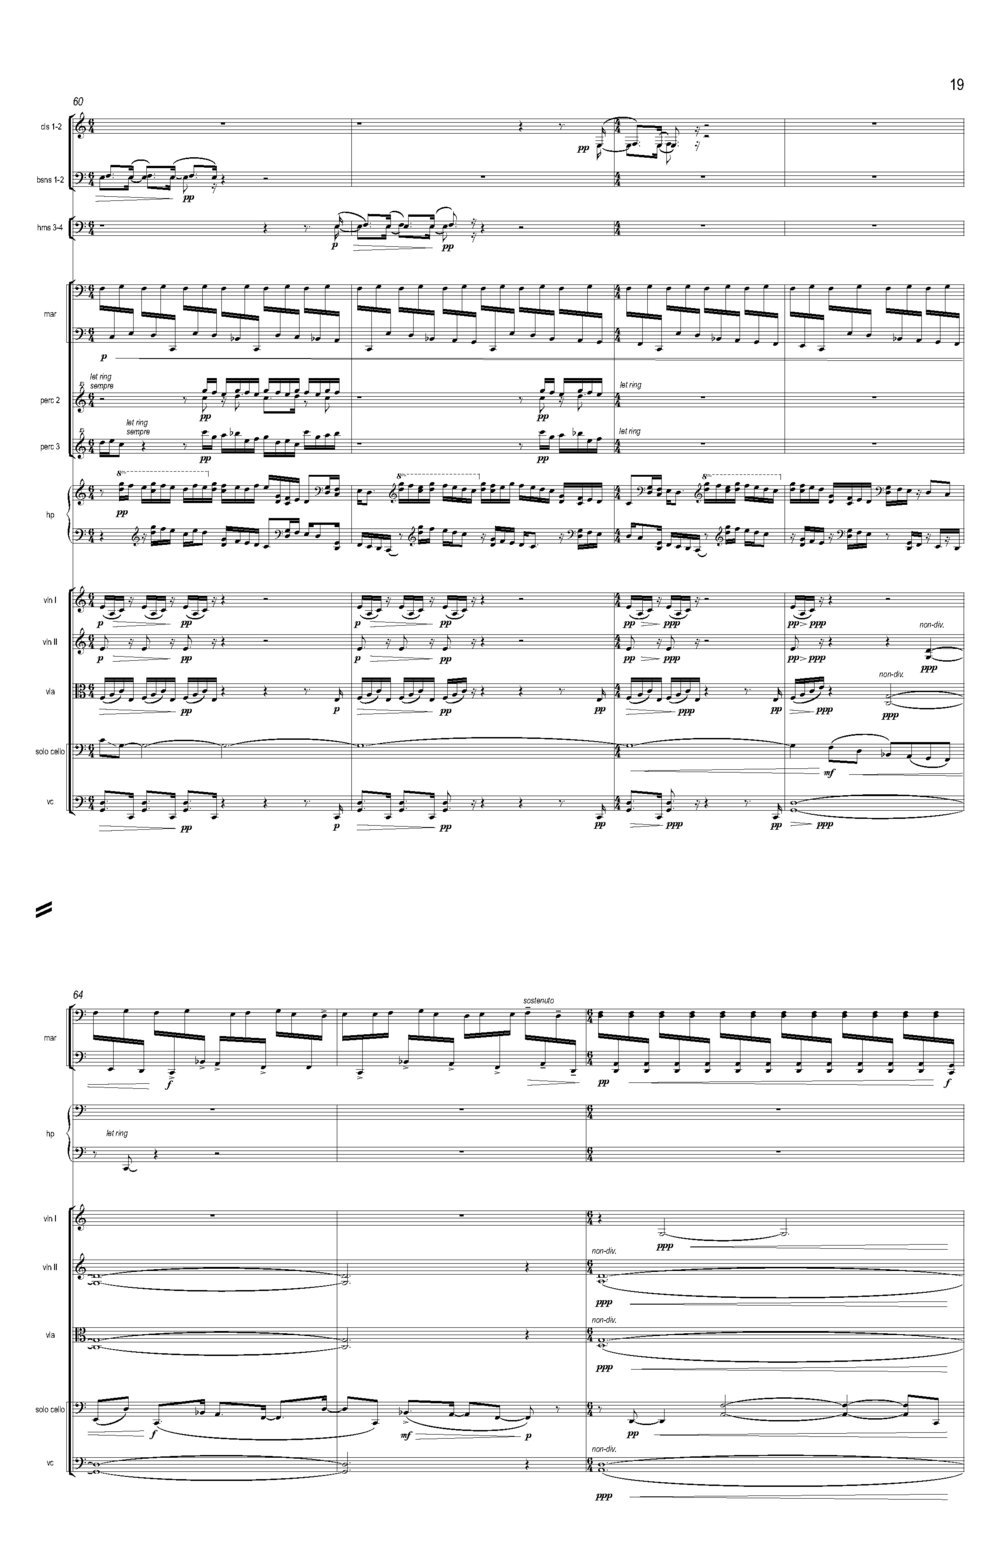 Ciach_Collective Uncommon REVISED_Full Score (Feb 2017)_Seite_25.jpg